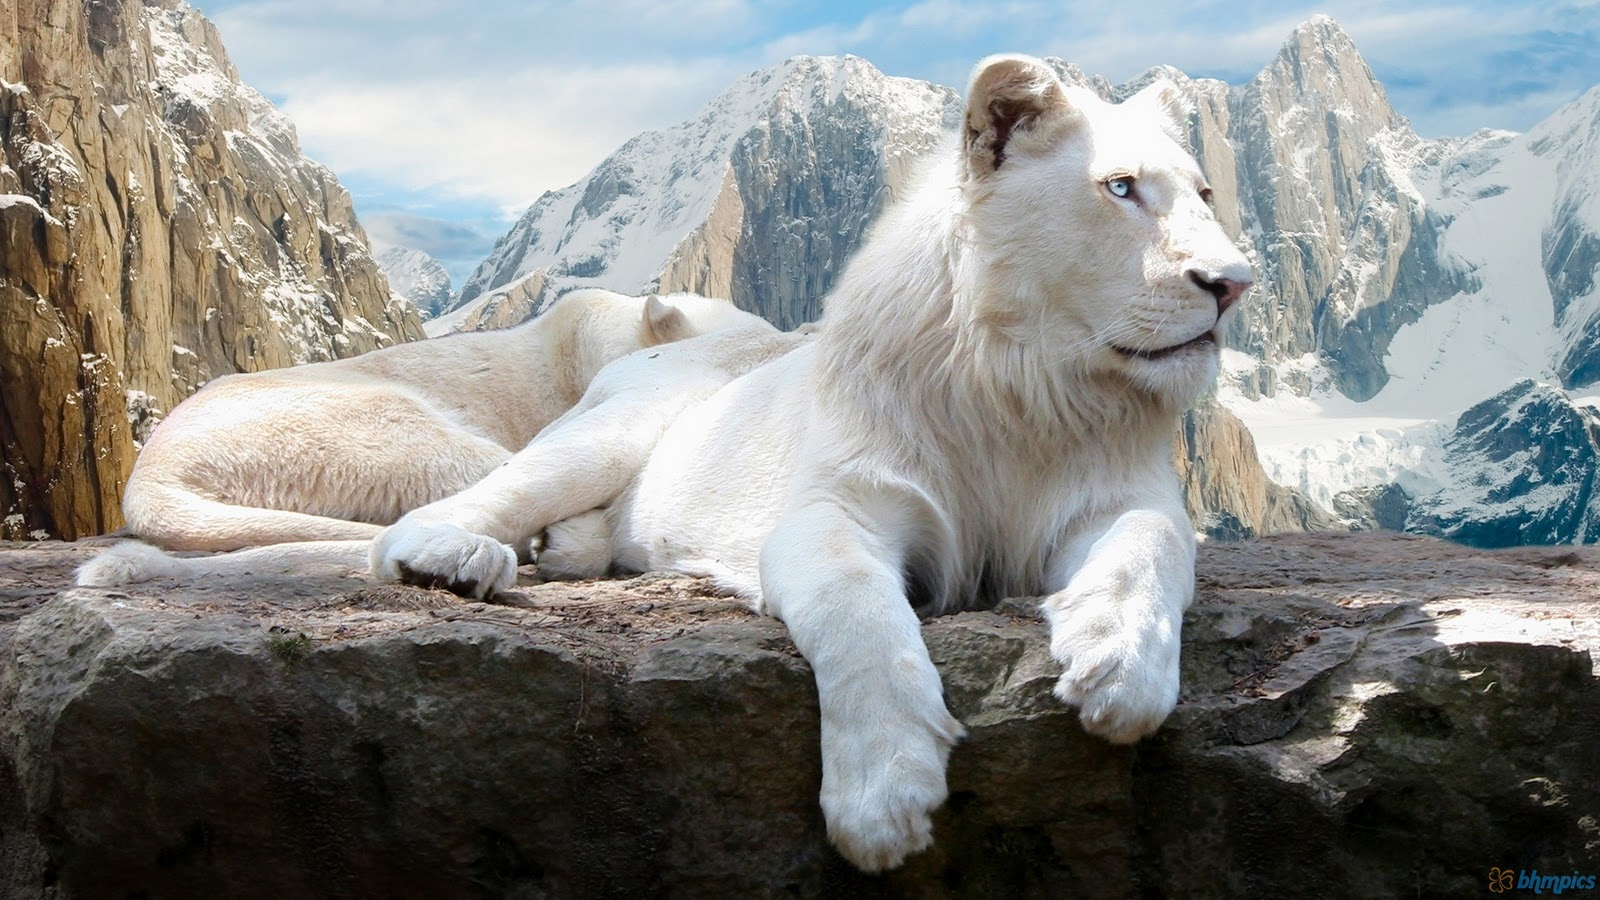 http://4.bp.blogspot.com/-edu9qyd2PFU/TxBXIhE-qpI/AAAAAAAAAR4/WXuiOfKeFRM/s1600/white_lion_on_mountain-1920x1080.jpg